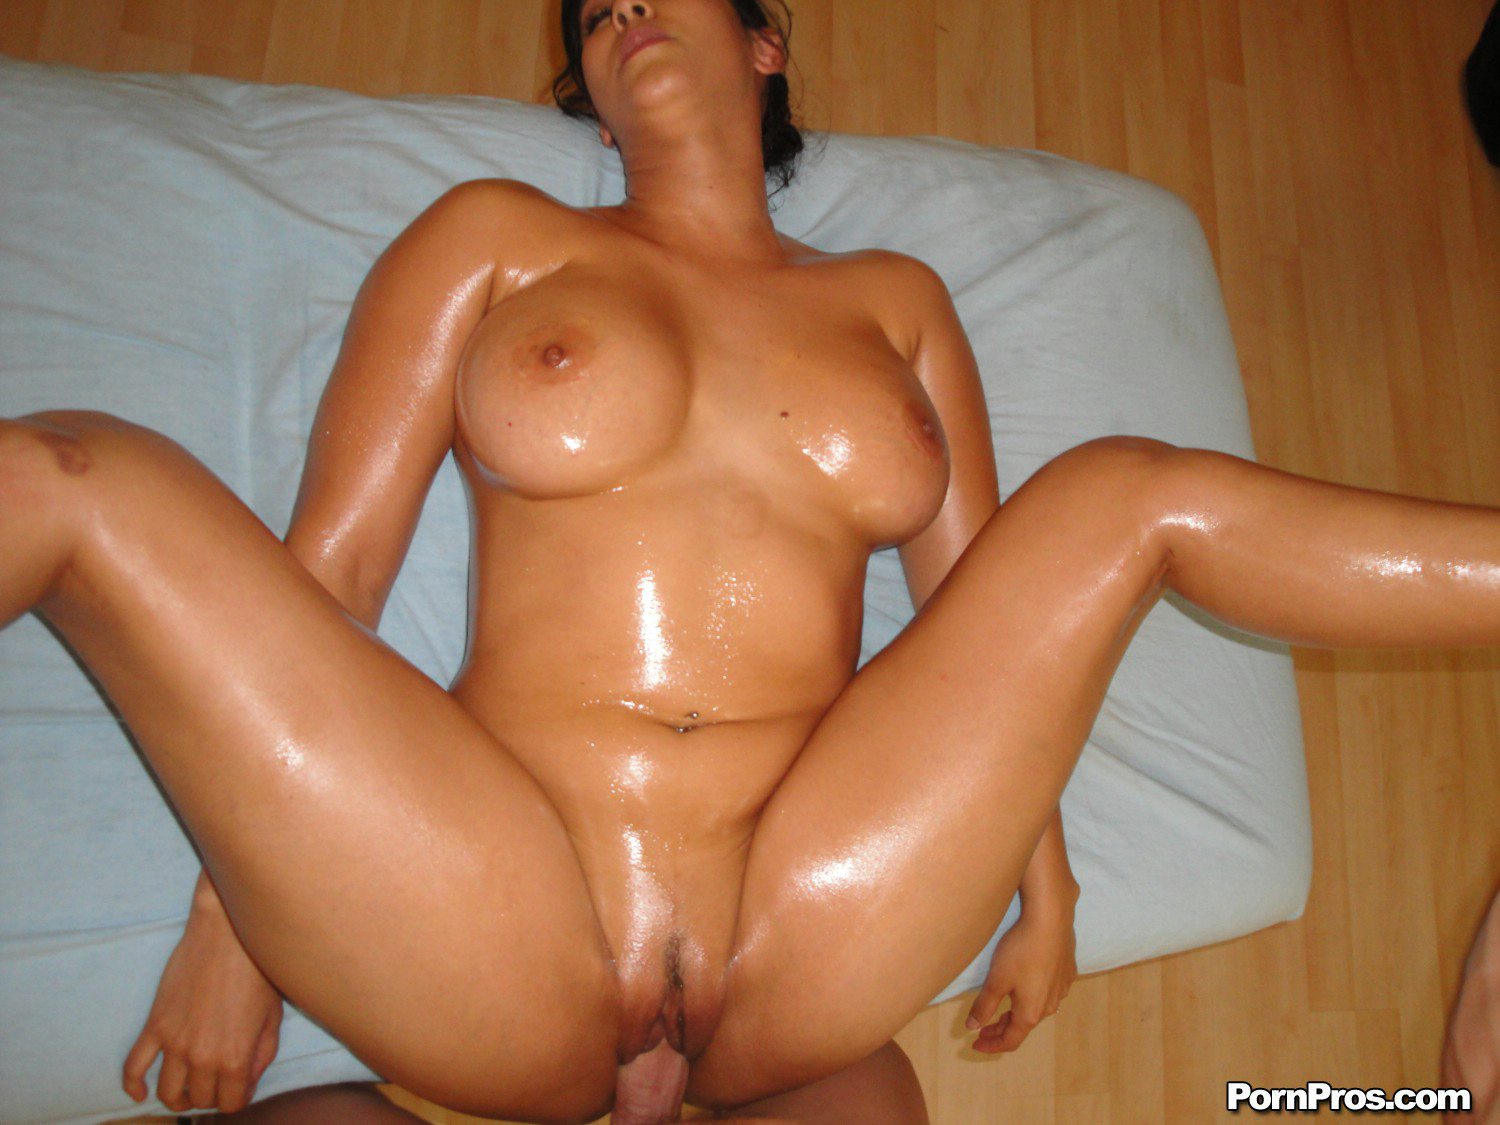 Isis Love Massage Porn - Isis Love enjoys hot massage and gets fucked hard.